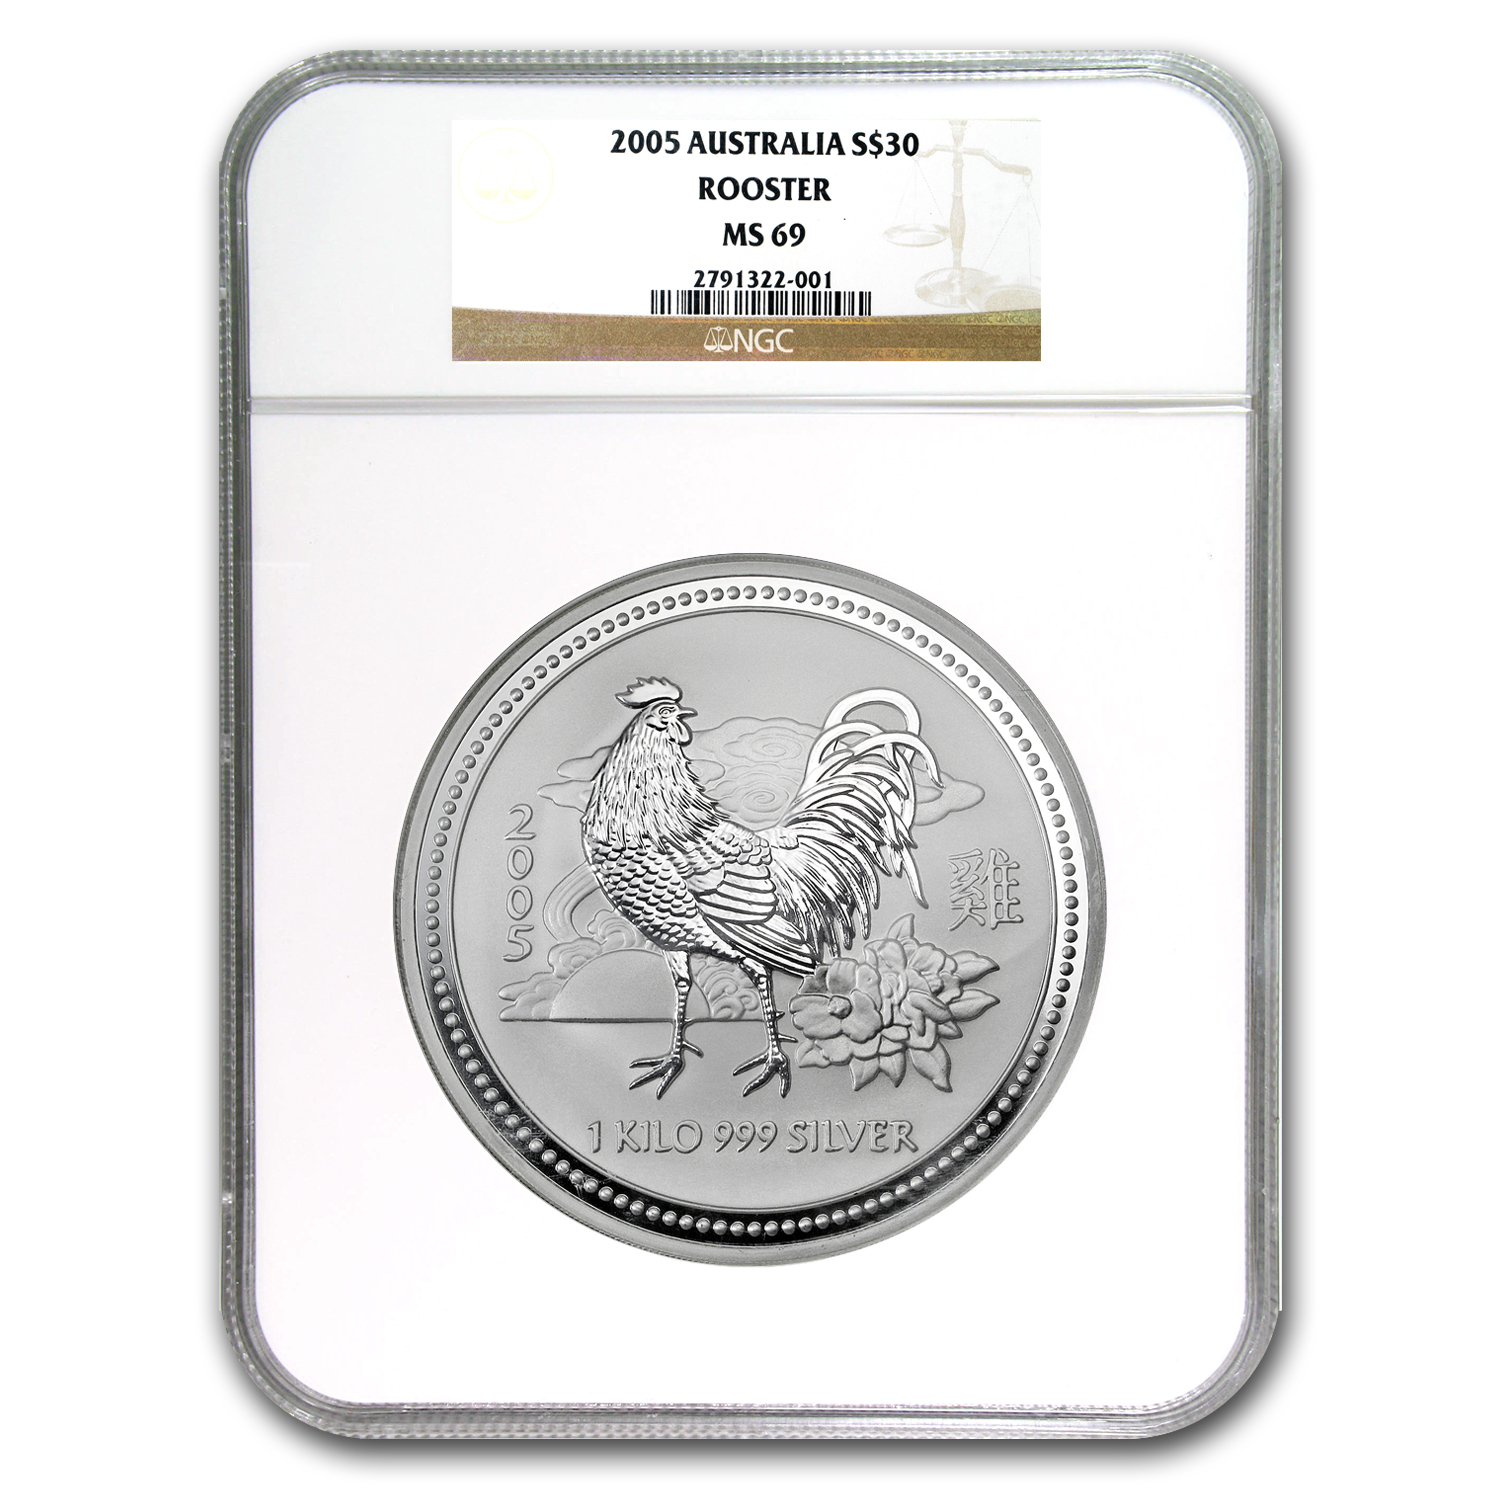 2005 Australia 1 kilo Silver Year of the Rooster MS-69 NGC